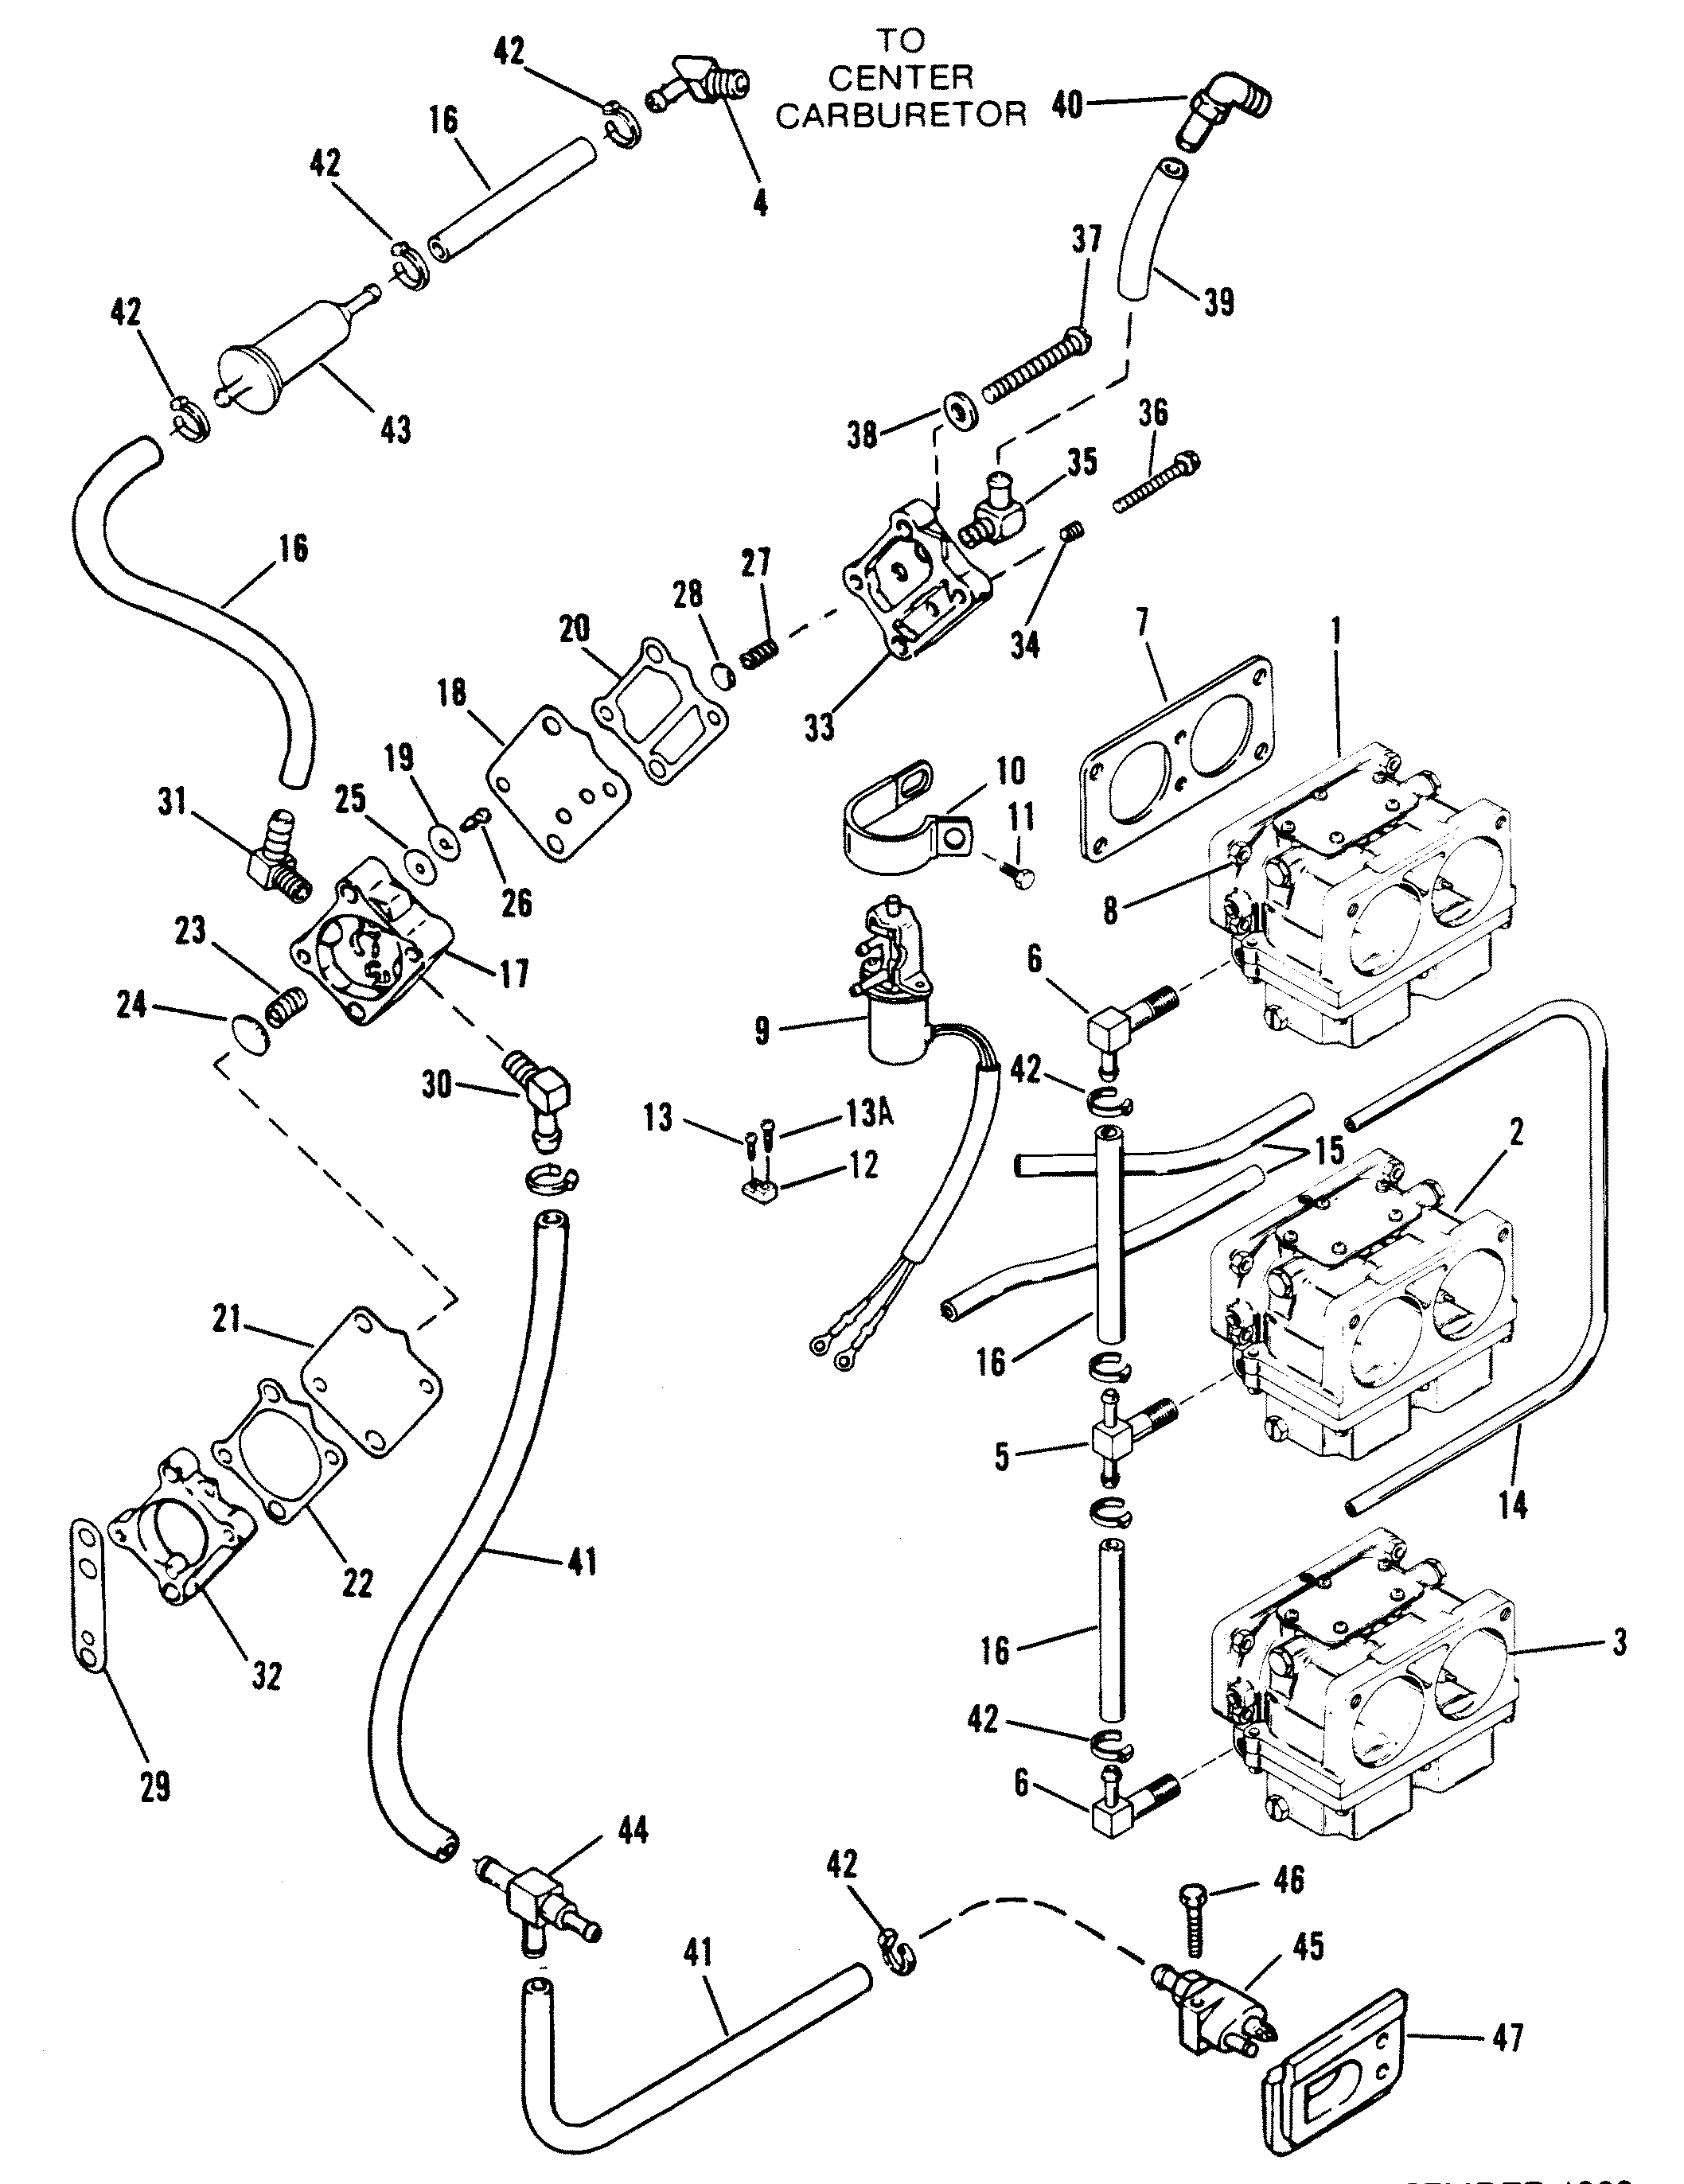 xj6 3 2 injector wiring diagram  xj6  get free image about